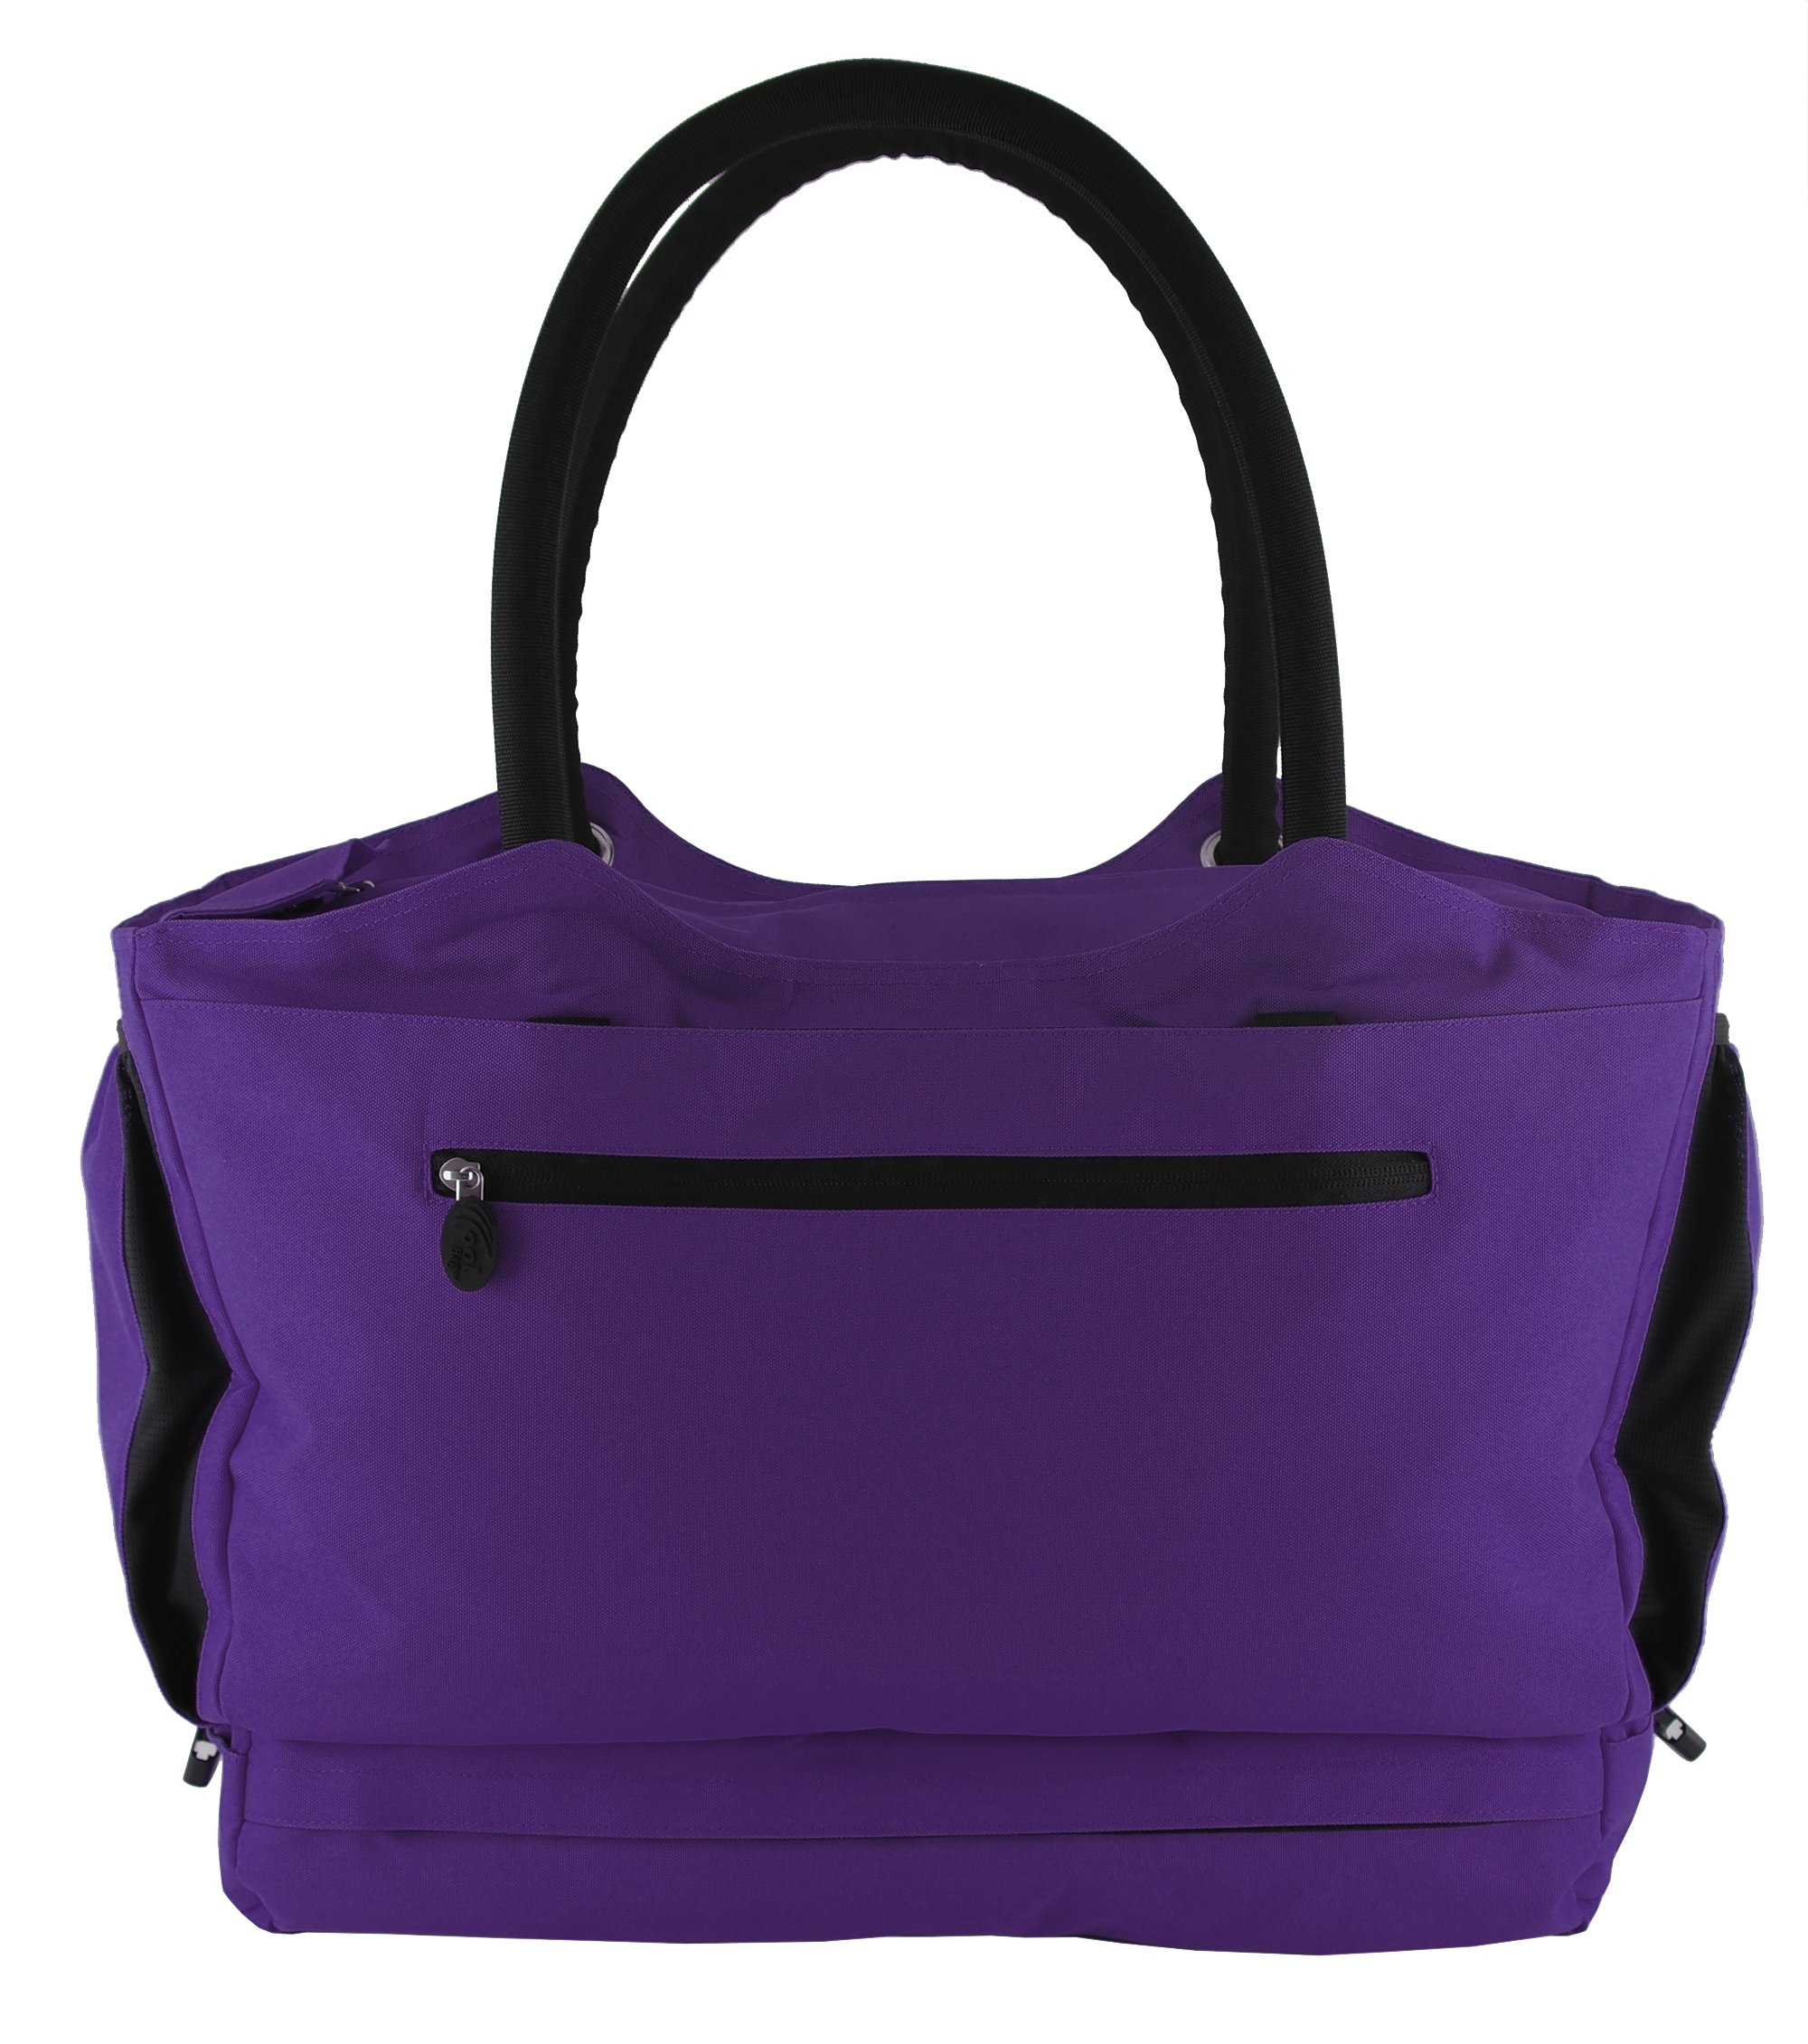 CoolBag Gen 2 Locking Anti-Theft Travel Tote With Insulated Cooler Compartment (Puerto Rico Purple)